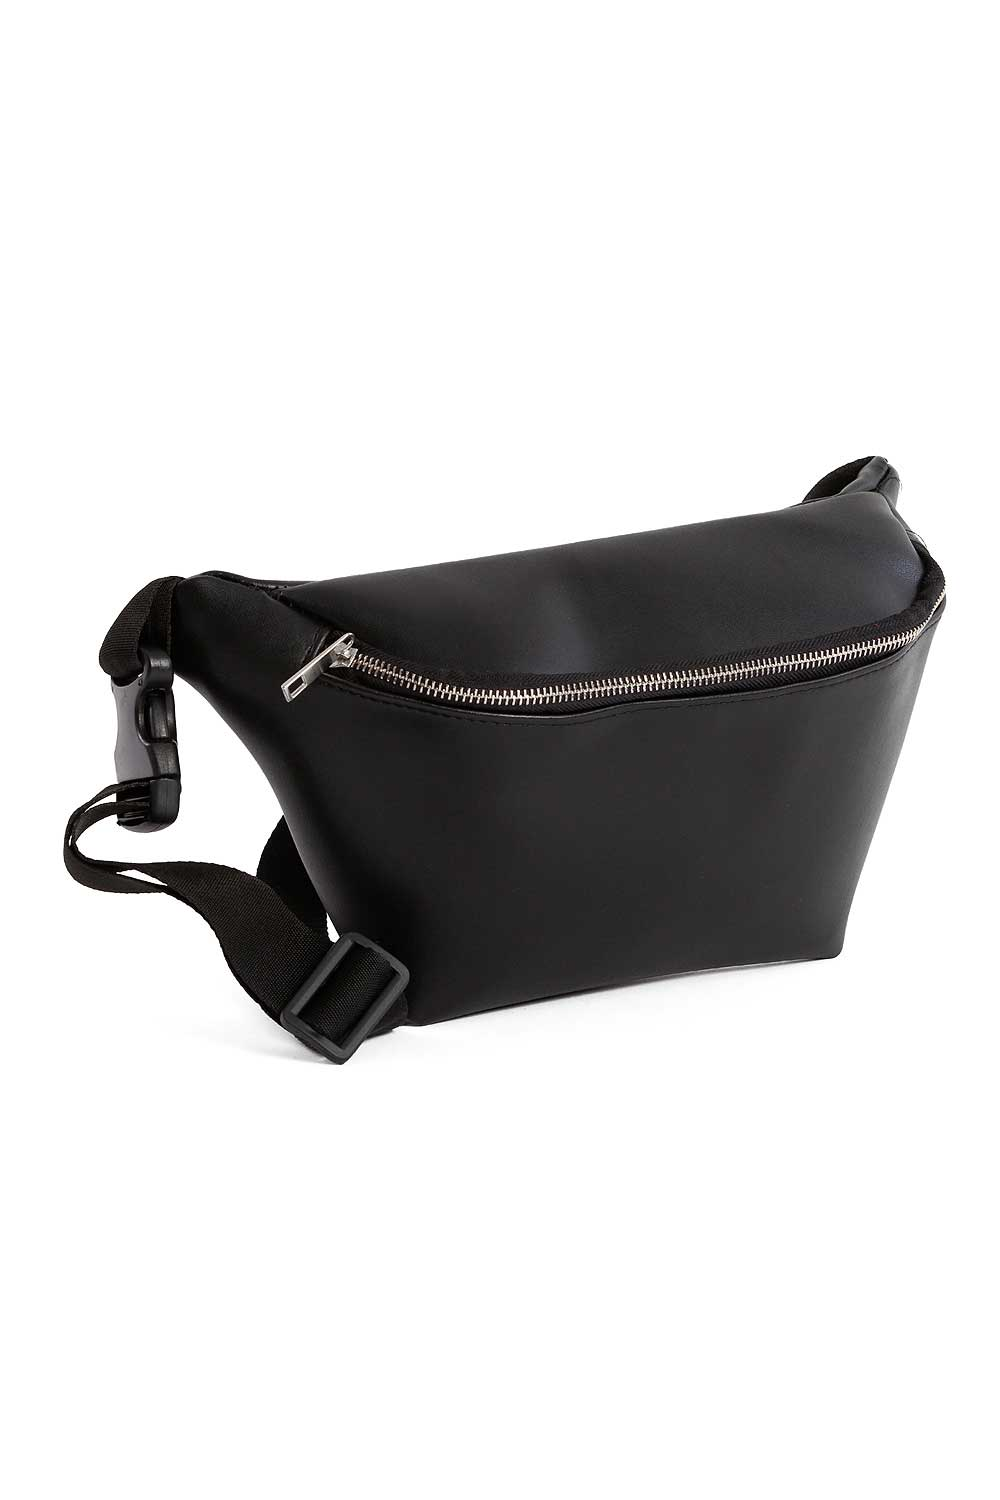 MIZALLE Zipper Detailed Waist Bag (Black) (1)